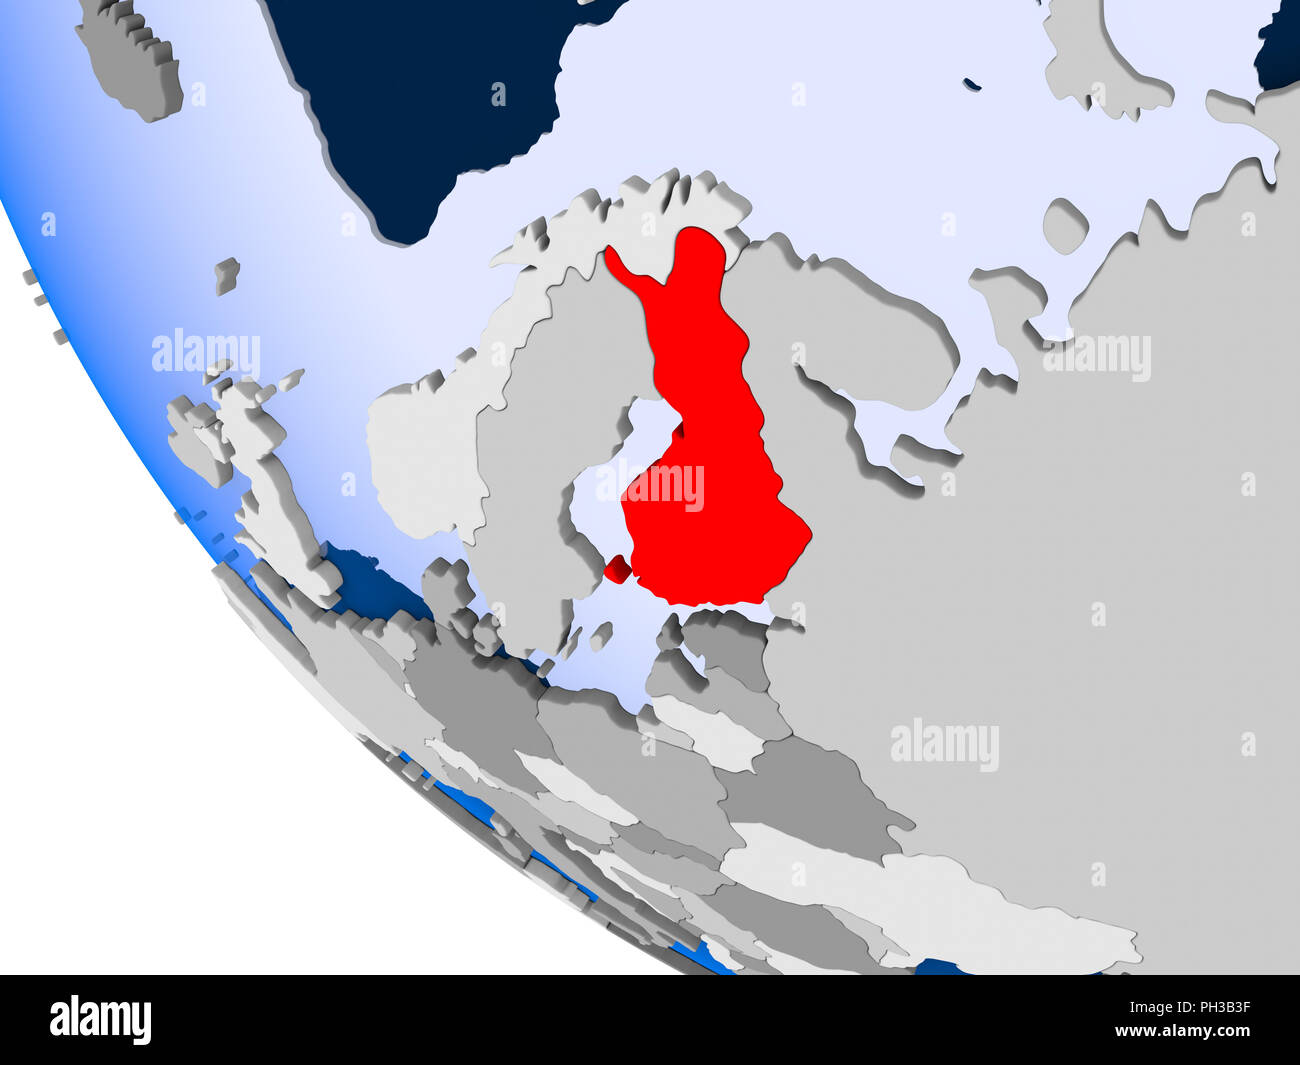 Map Of Finland In Red On Political Globe With Transparent Oceans